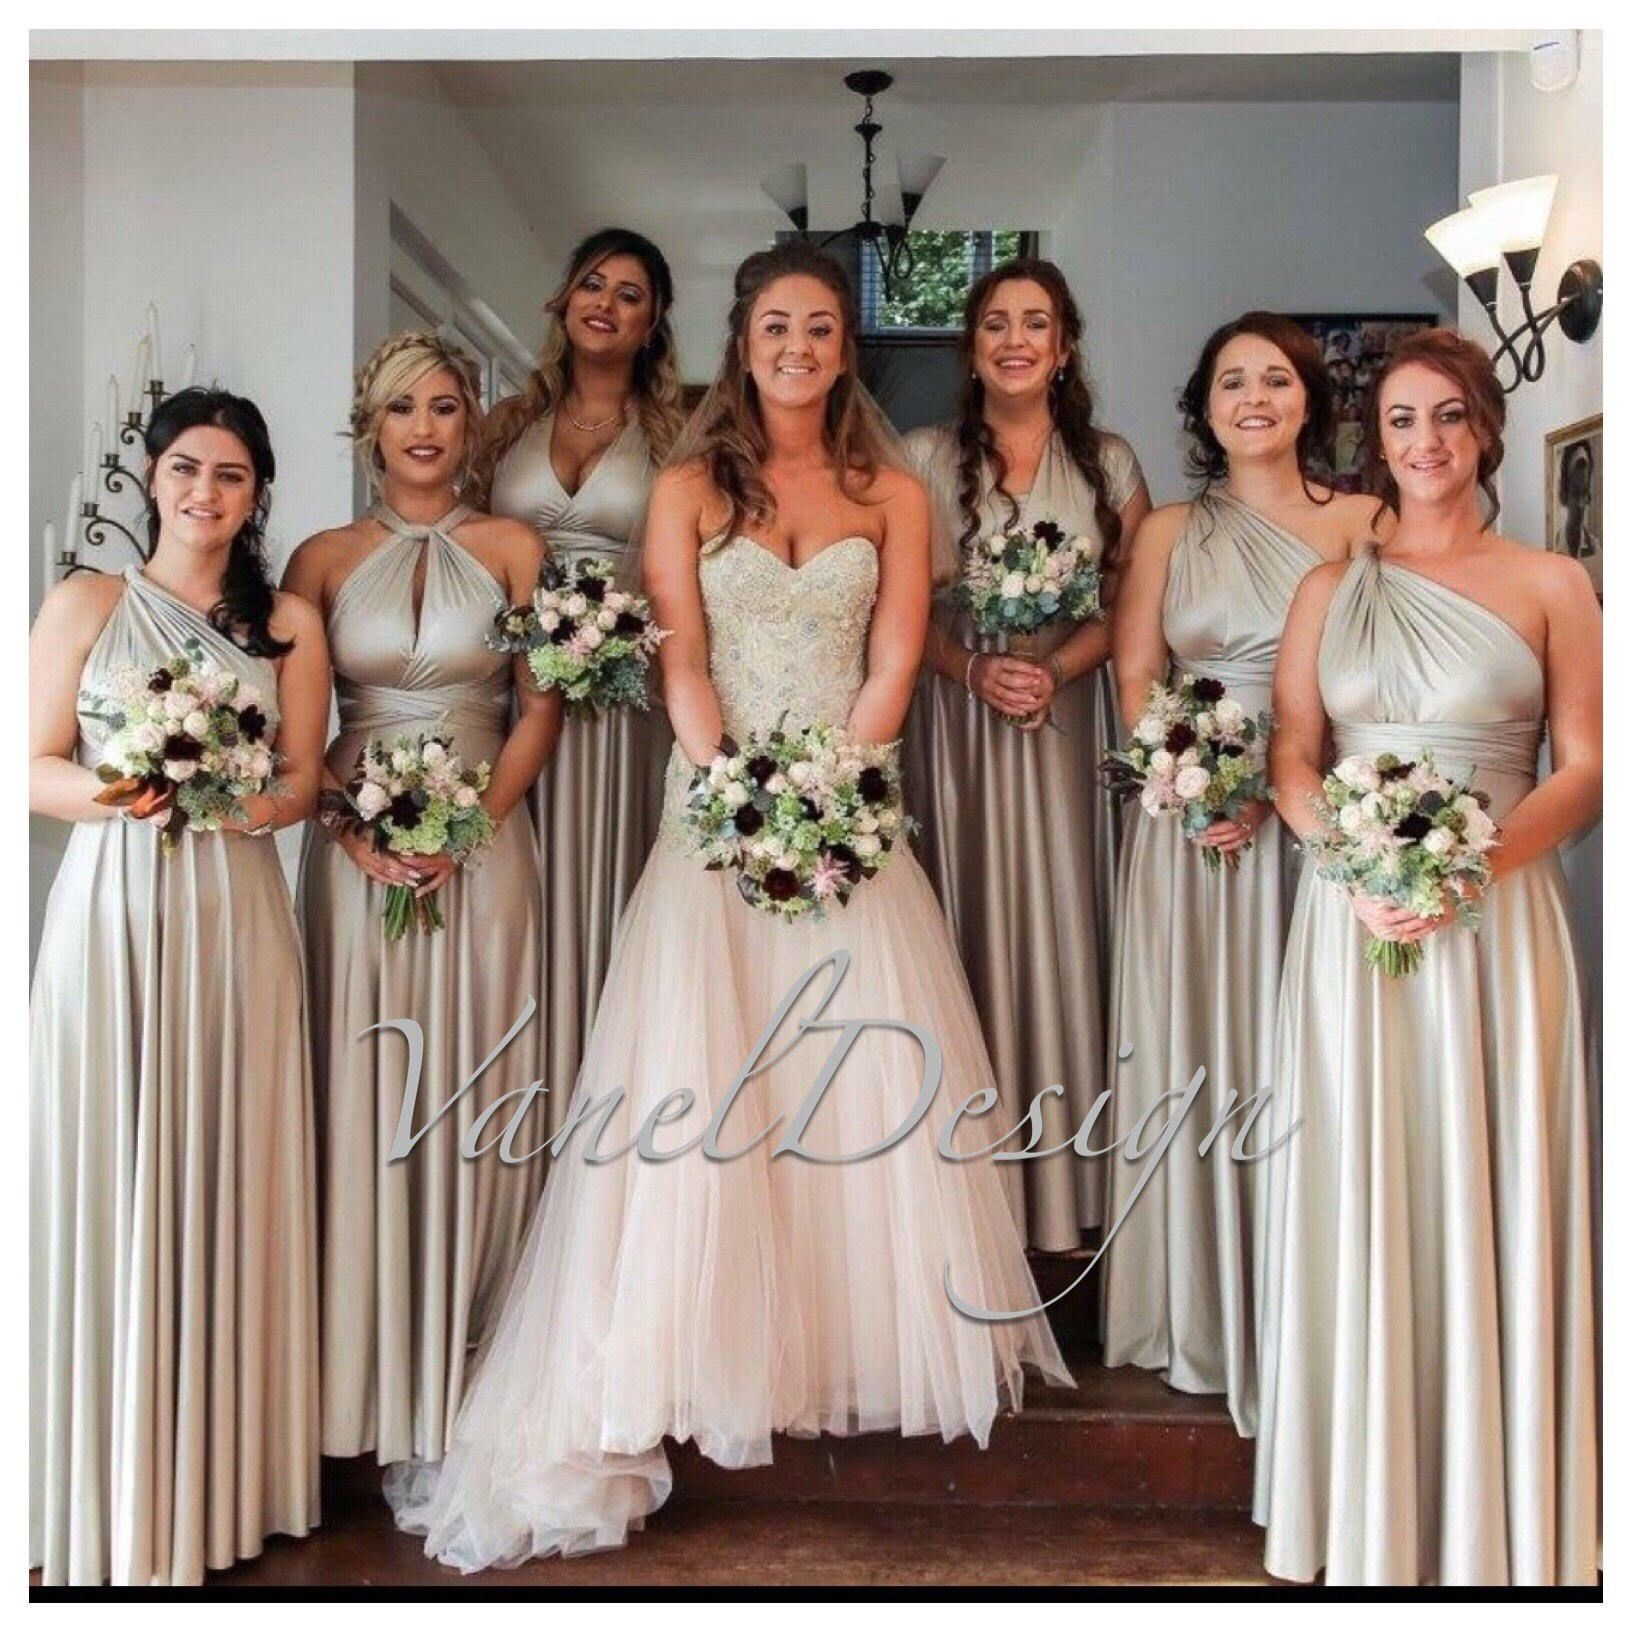 Luxe Satin Ballgown Multiway Infinity Dress In Light Gold Infinity Dress Bridesmaid Multiway Bridesmaid Dress Bridesmaid Dress Colors